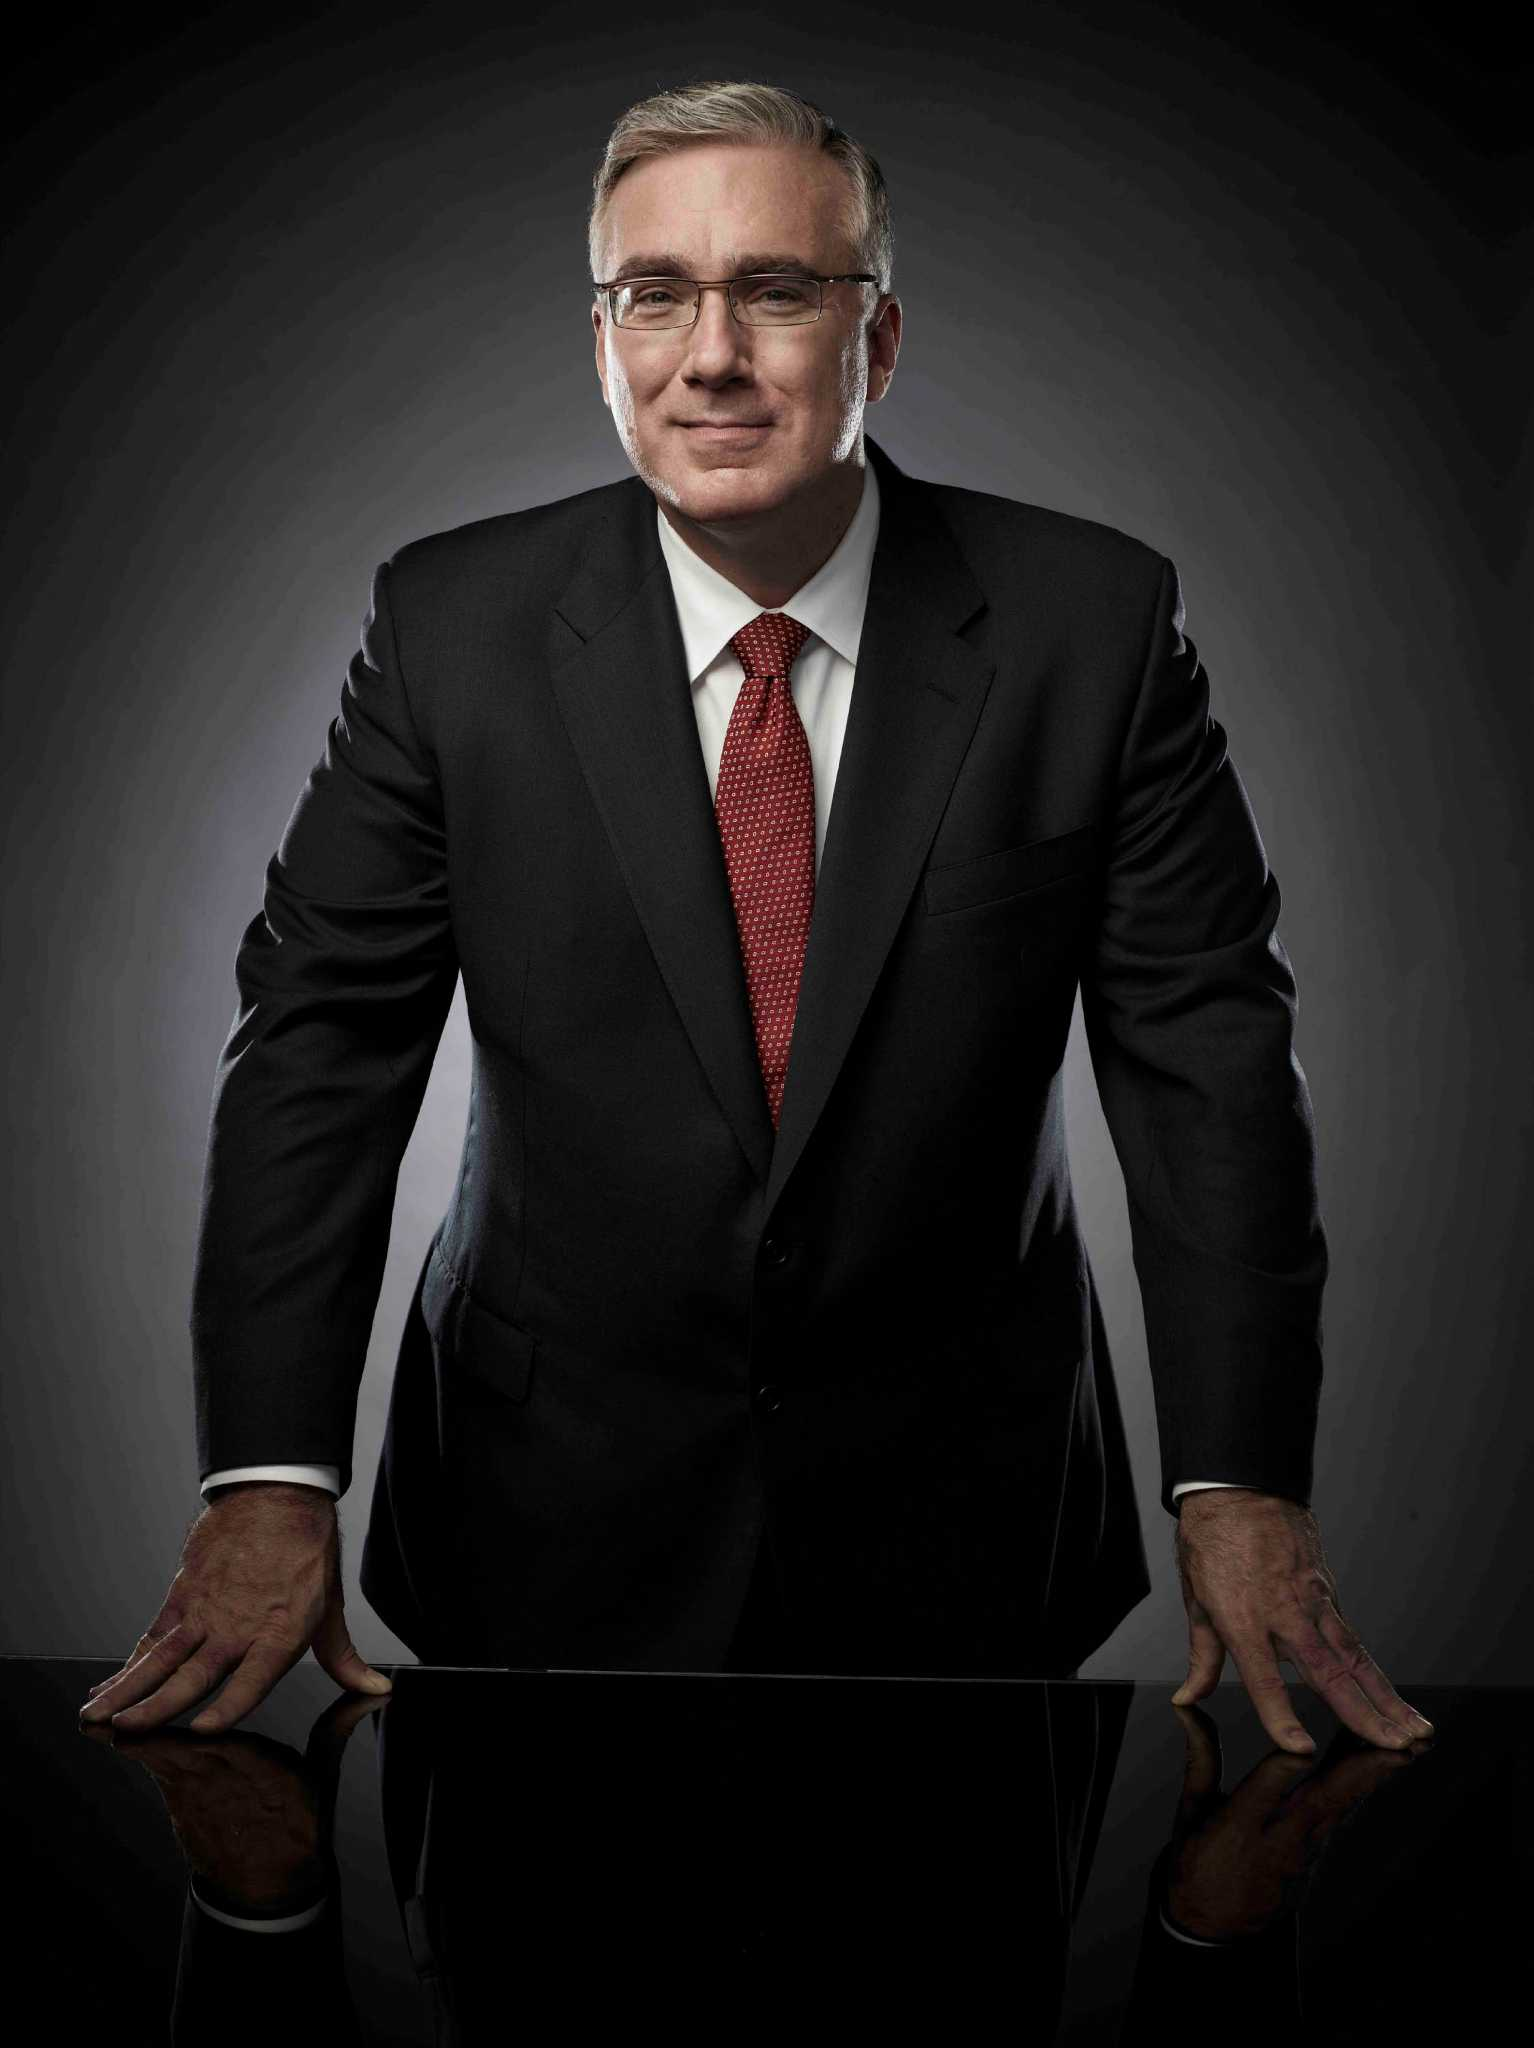 Keith Olbermann Announces Final Episode of GQ Series 'The Resistance